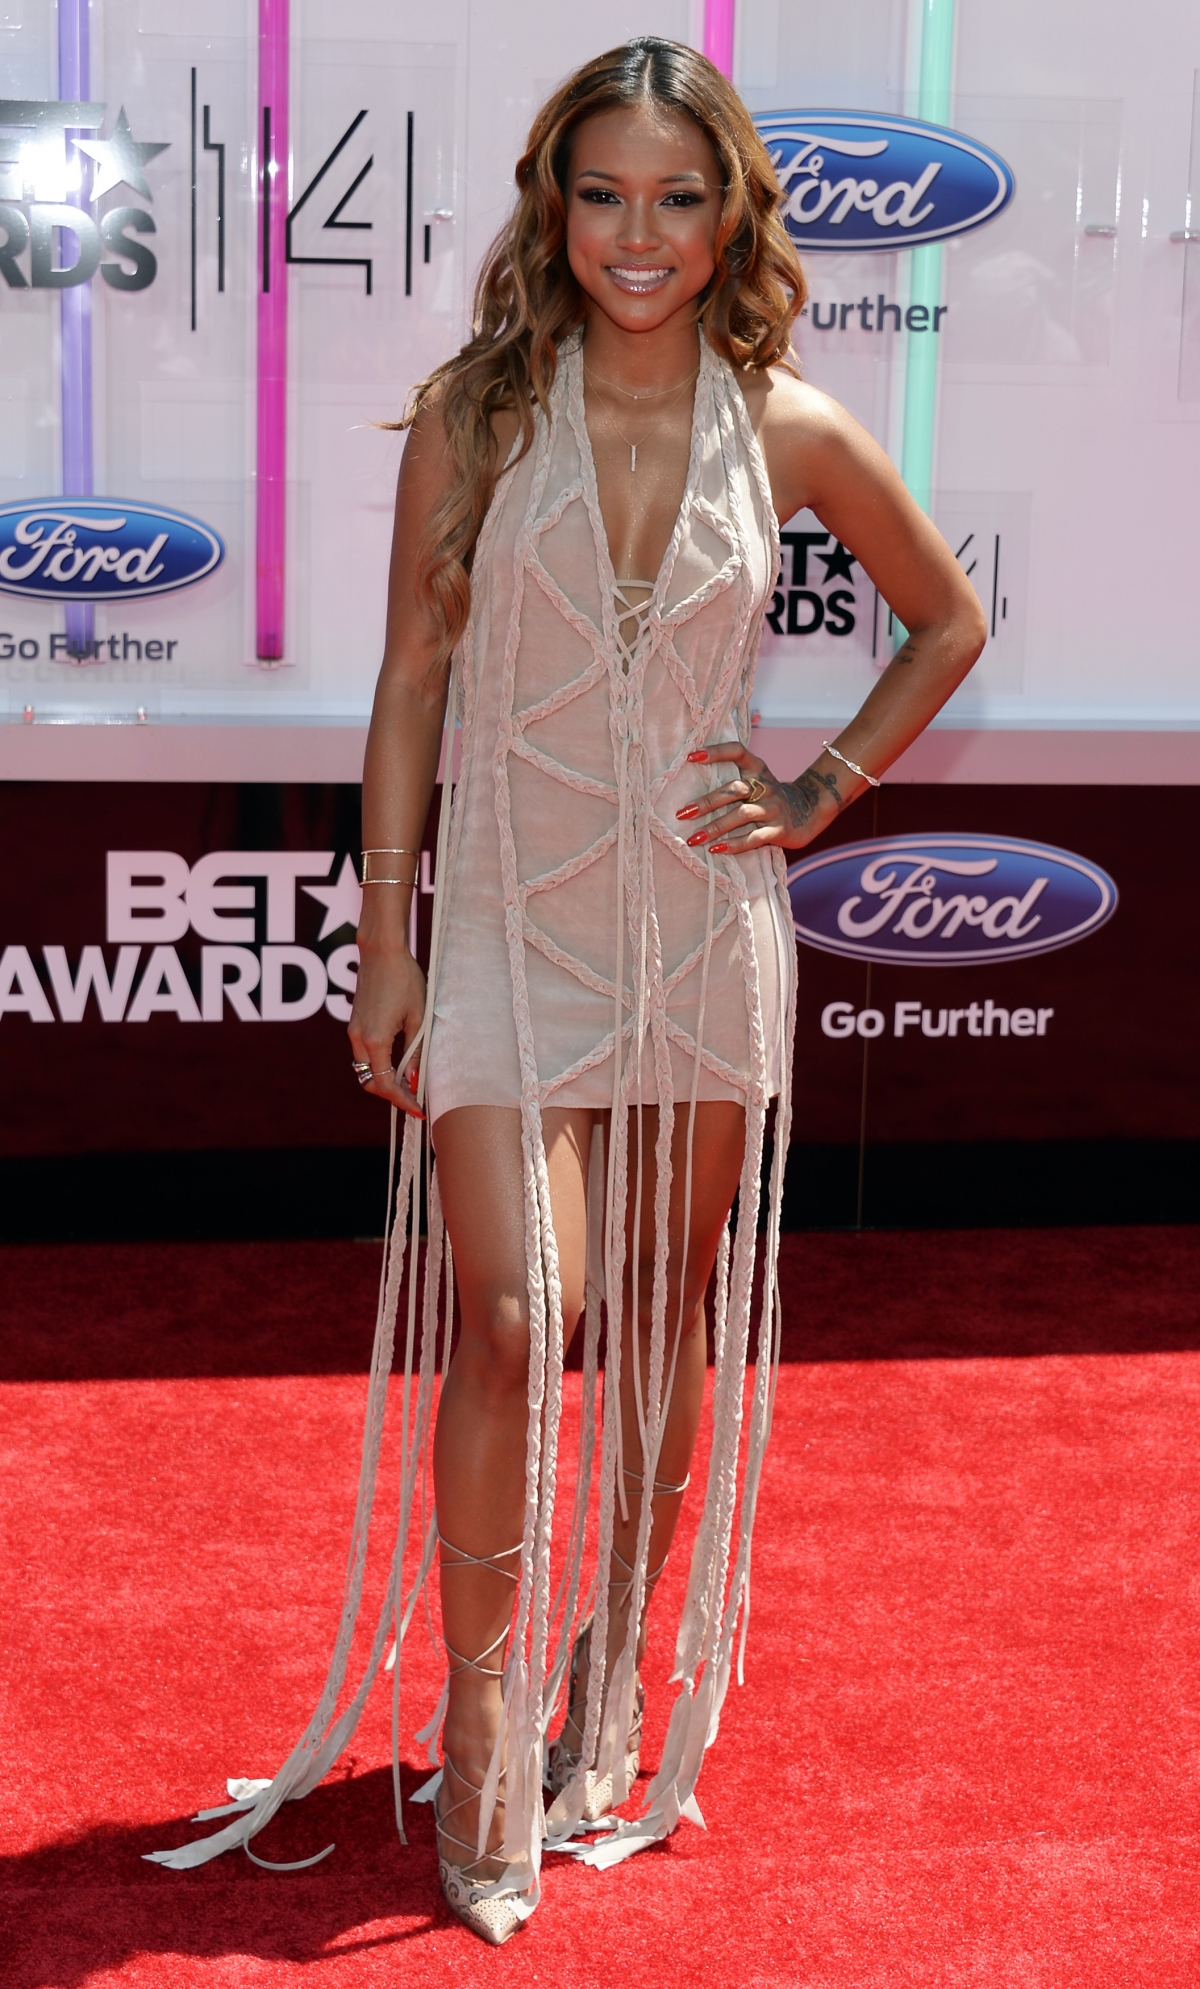 Karrueche Tran arrives at the 2014 BET Awards in Los Angeles, California June 29, 2014.